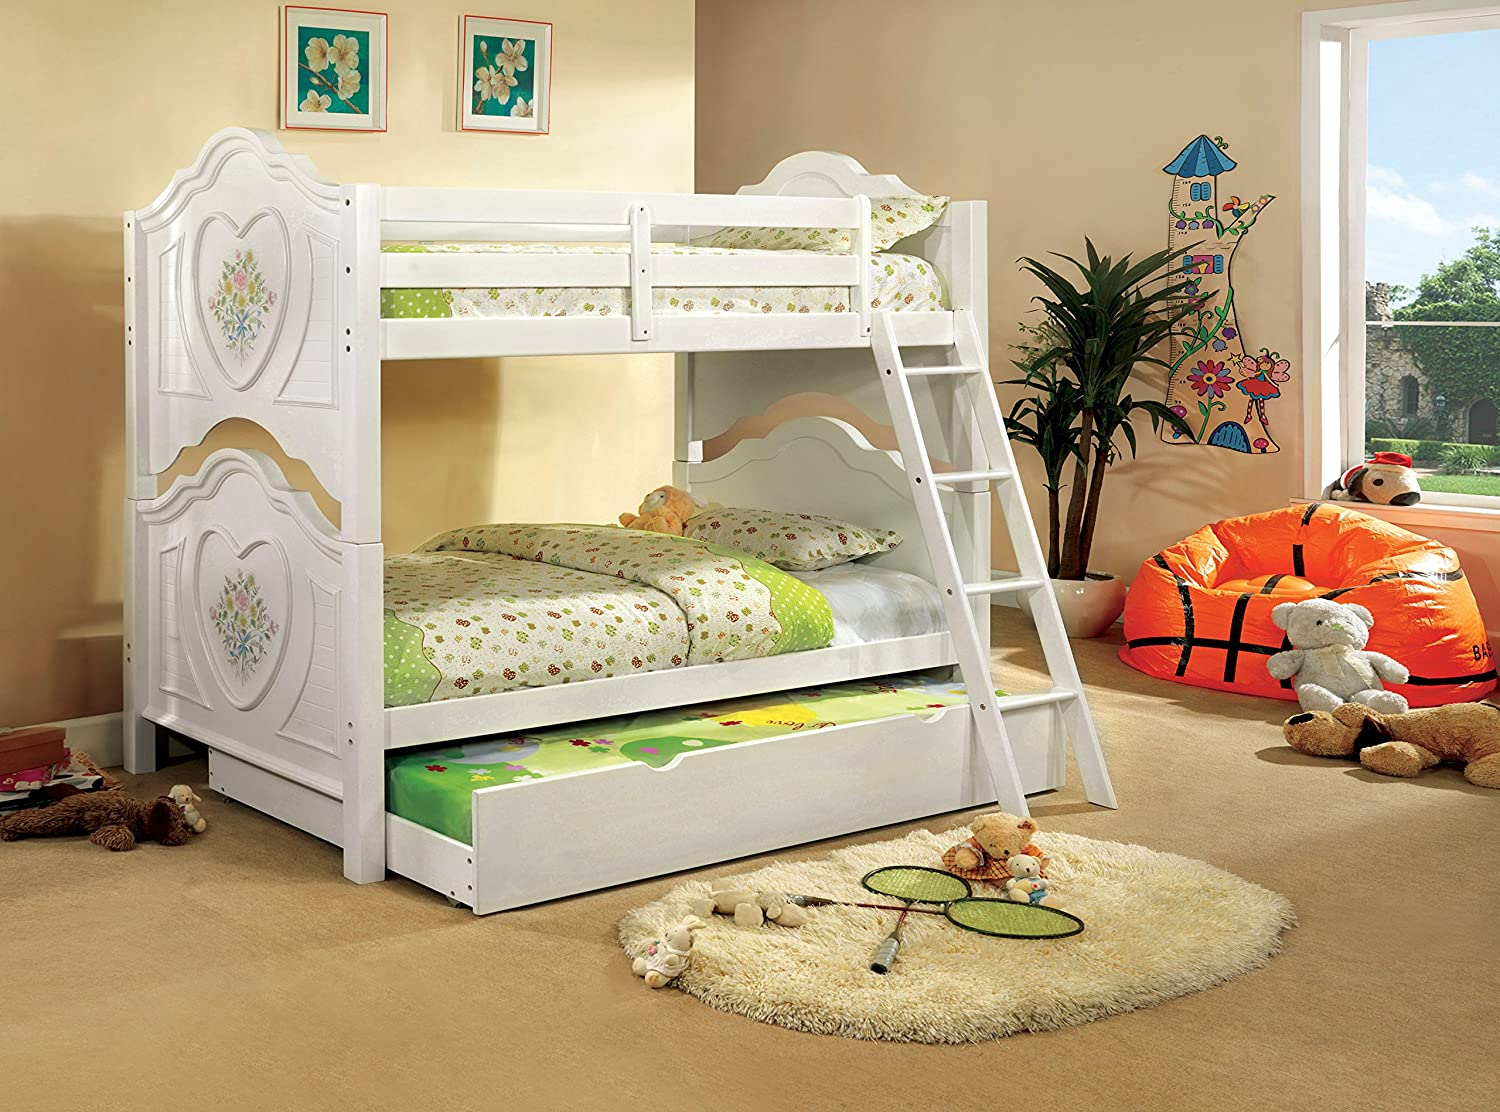 Hailey Bunk Bed & Trundle Set, Twin, White